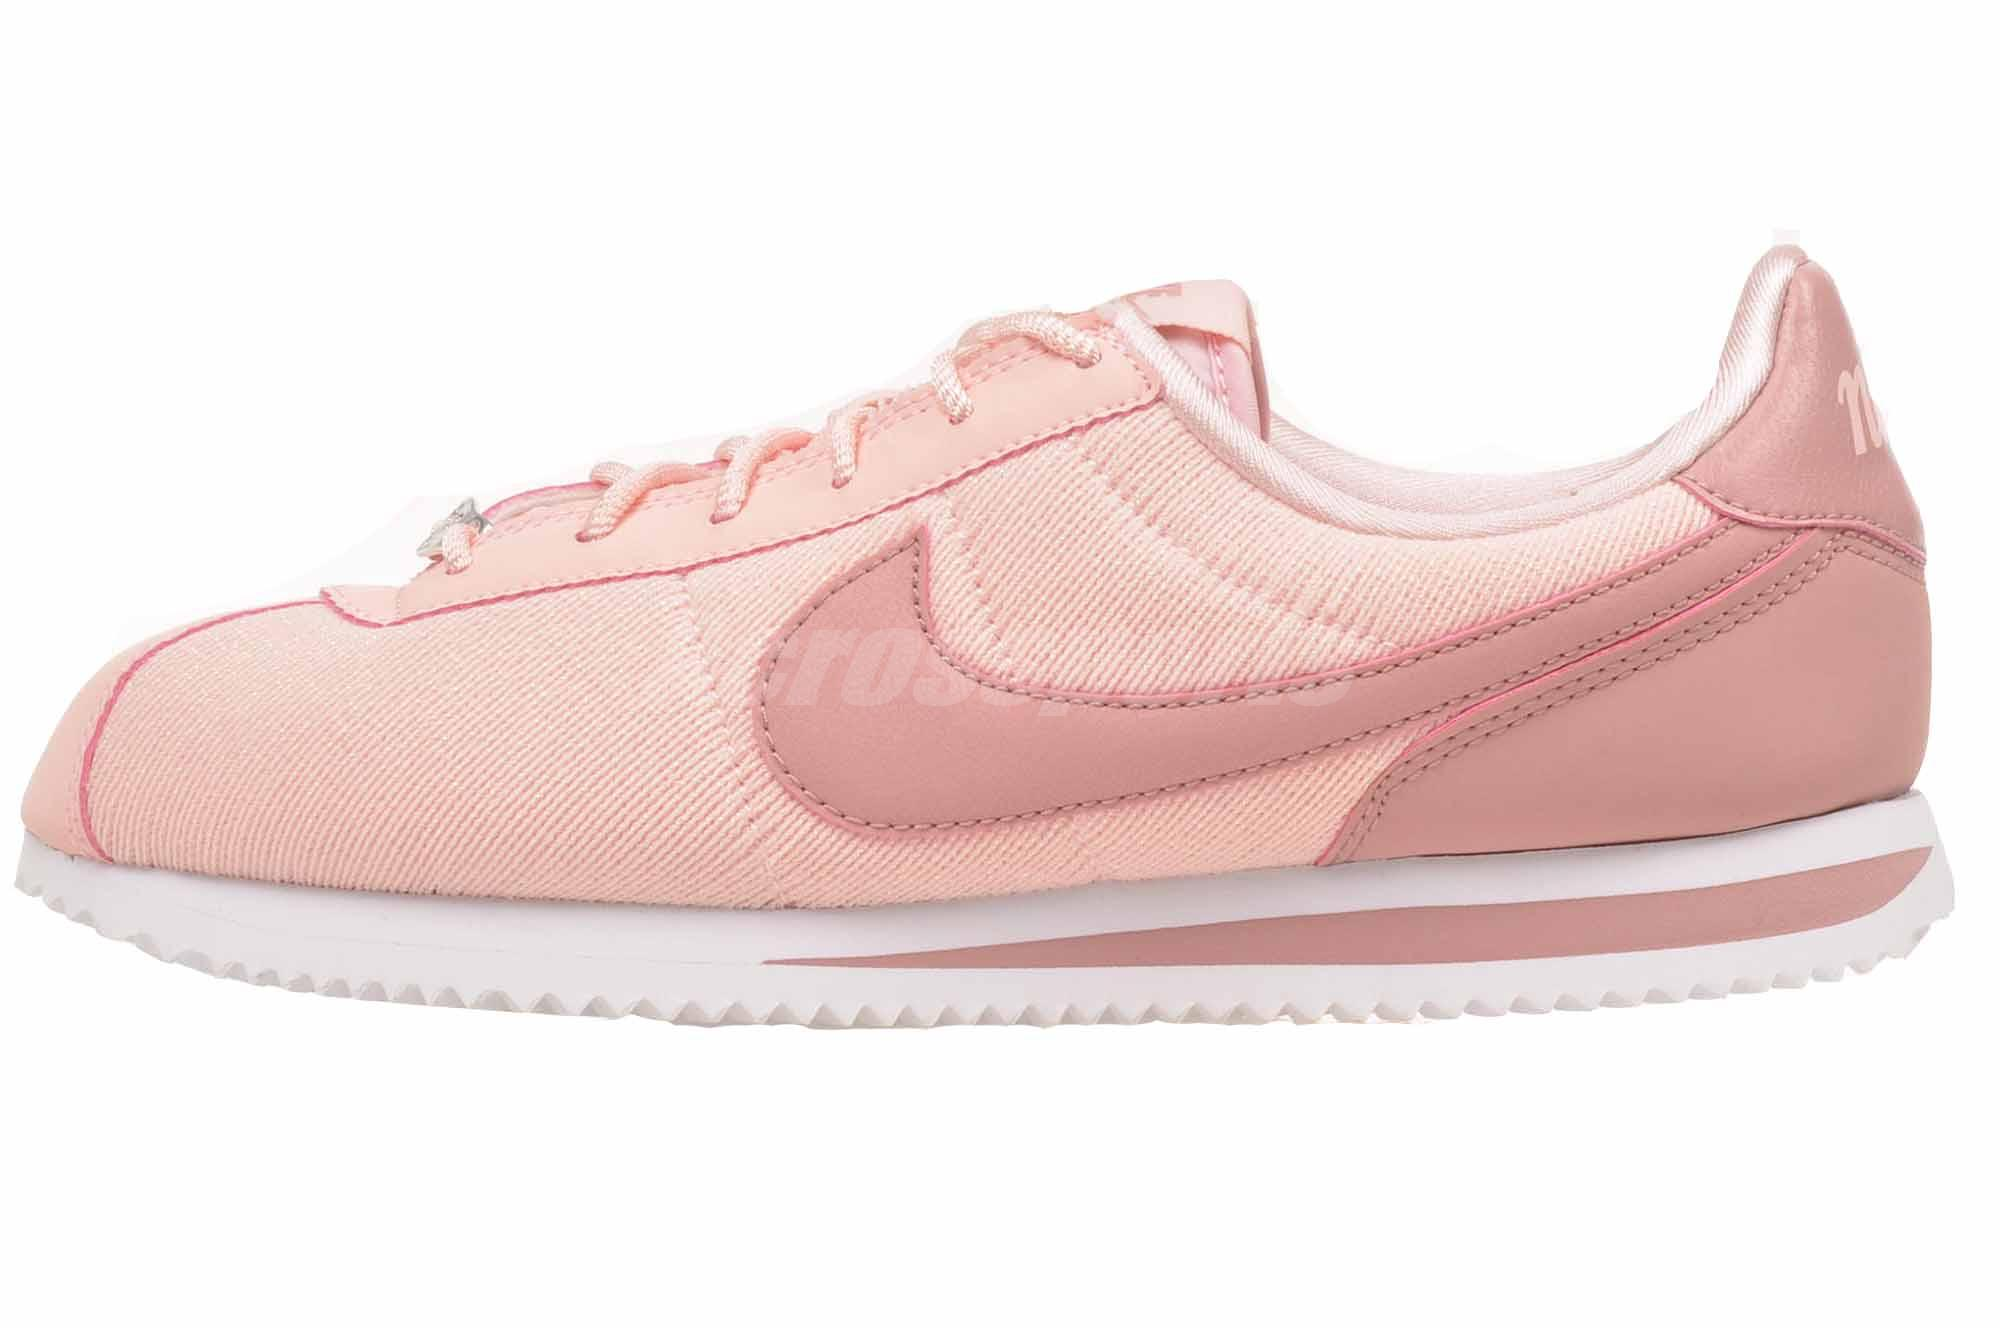 best service 66e9c b4266 Details about Nike Cortez Basic TXT SE GS Casual Kids Youth Womens Shoes  Pink AA3498-600